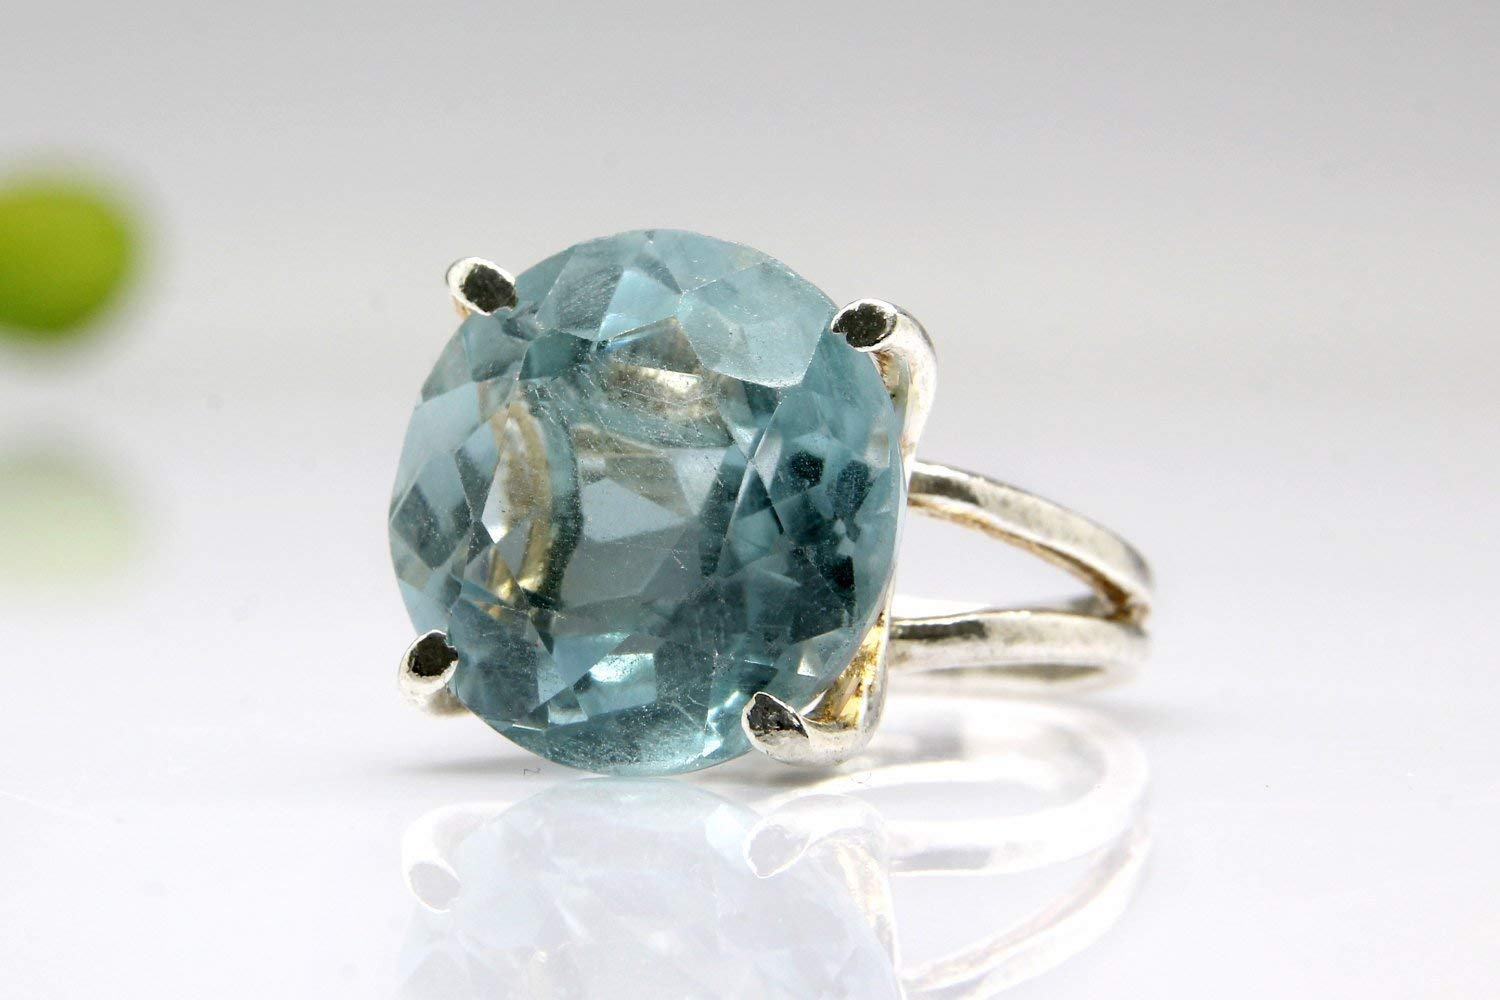 Anemone Jewelry Topaz Ring - Topaz Birthstone Jewelry with Gold Designed and Made by Artisans for Lovely Women [Handmade]